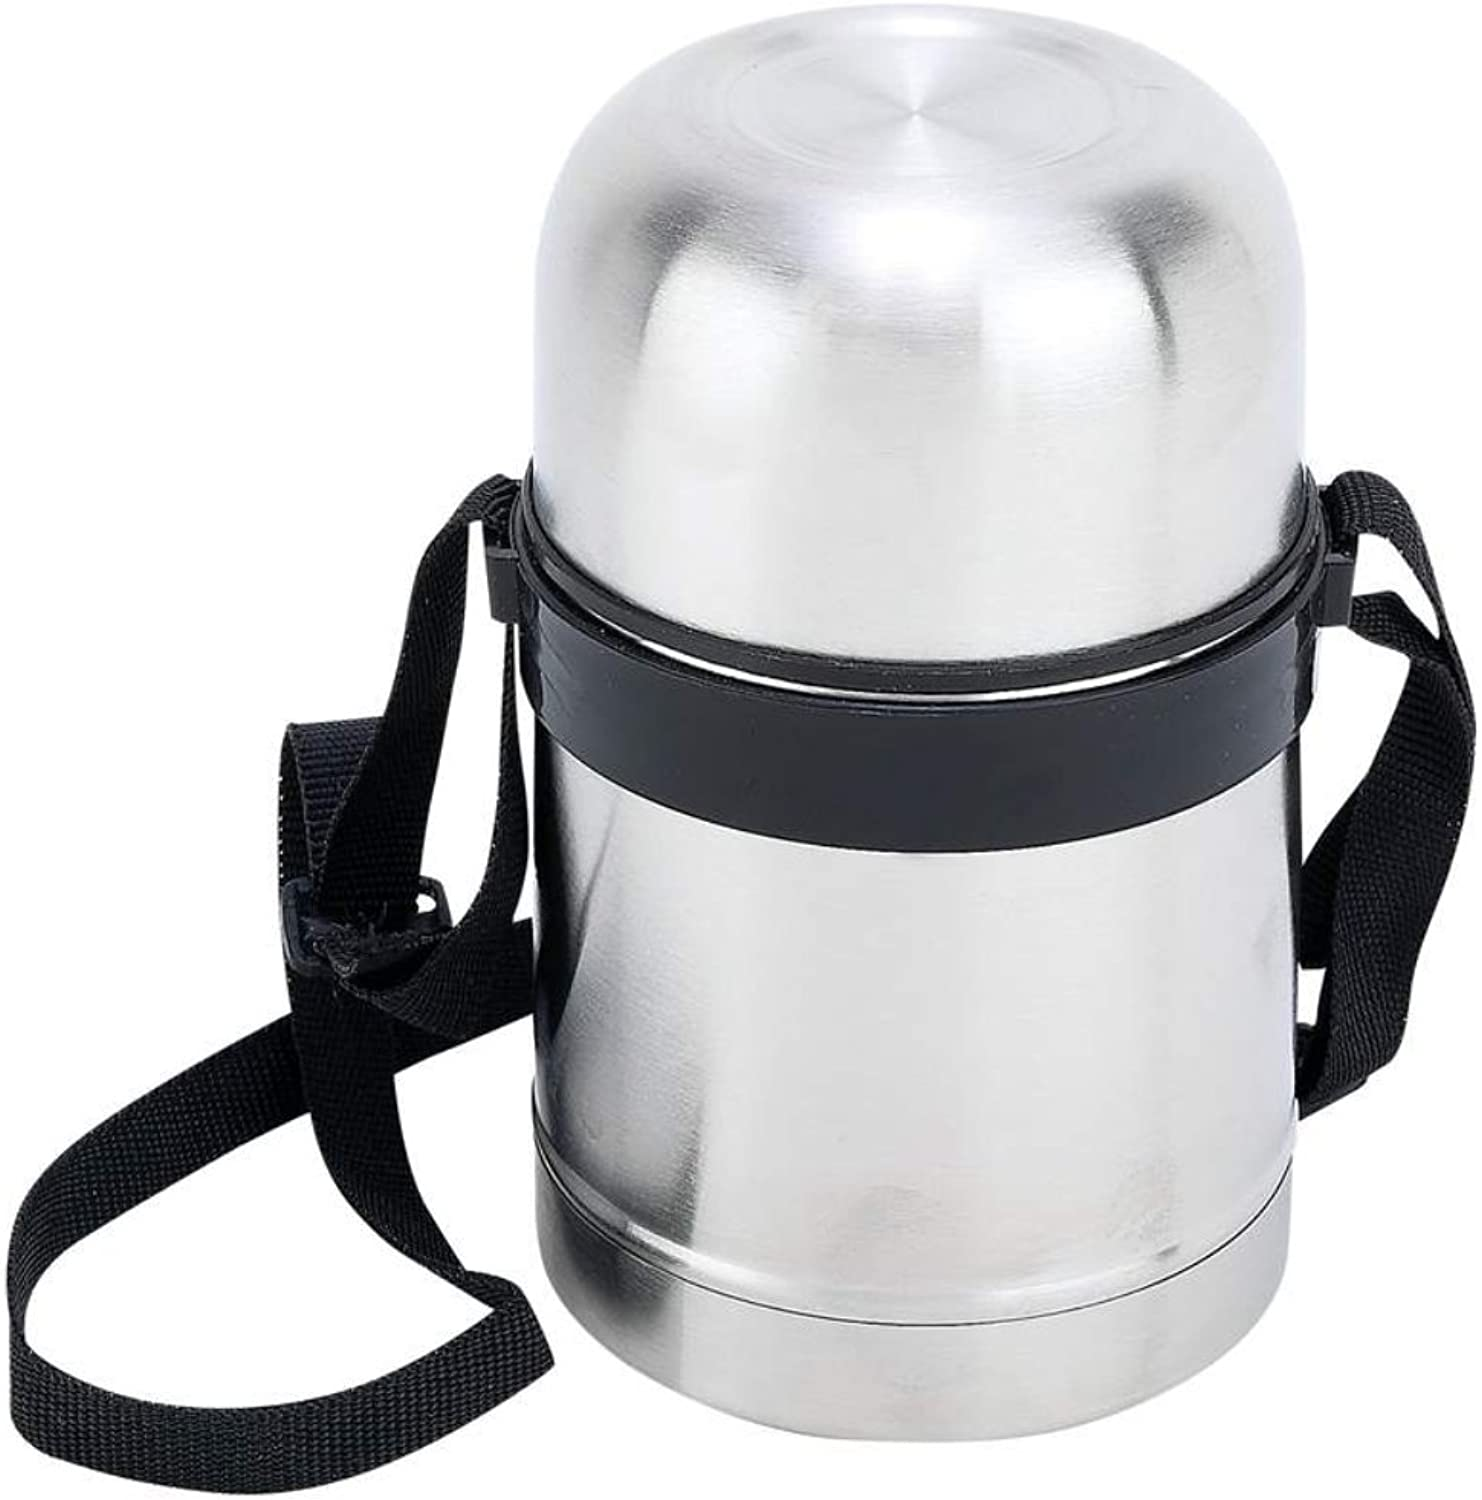 popular Stainless Steel 17 oz oz oz Vacuum Soup Container with Carrying Strap by Maxam  tienda de descuento